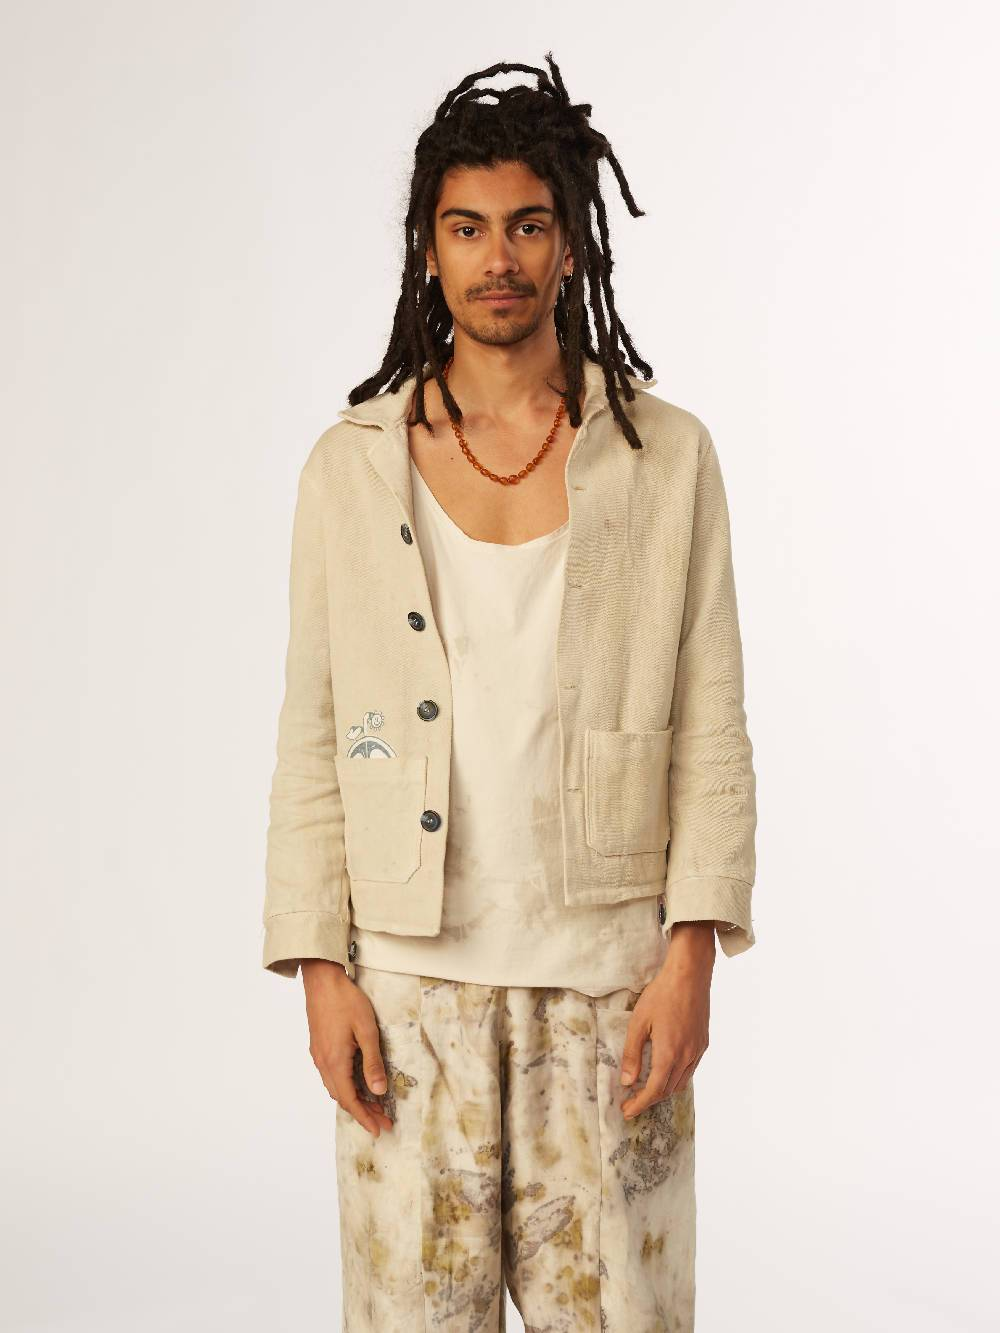 E A Williams Naturally dyed Hibiscus Unisex Jacket